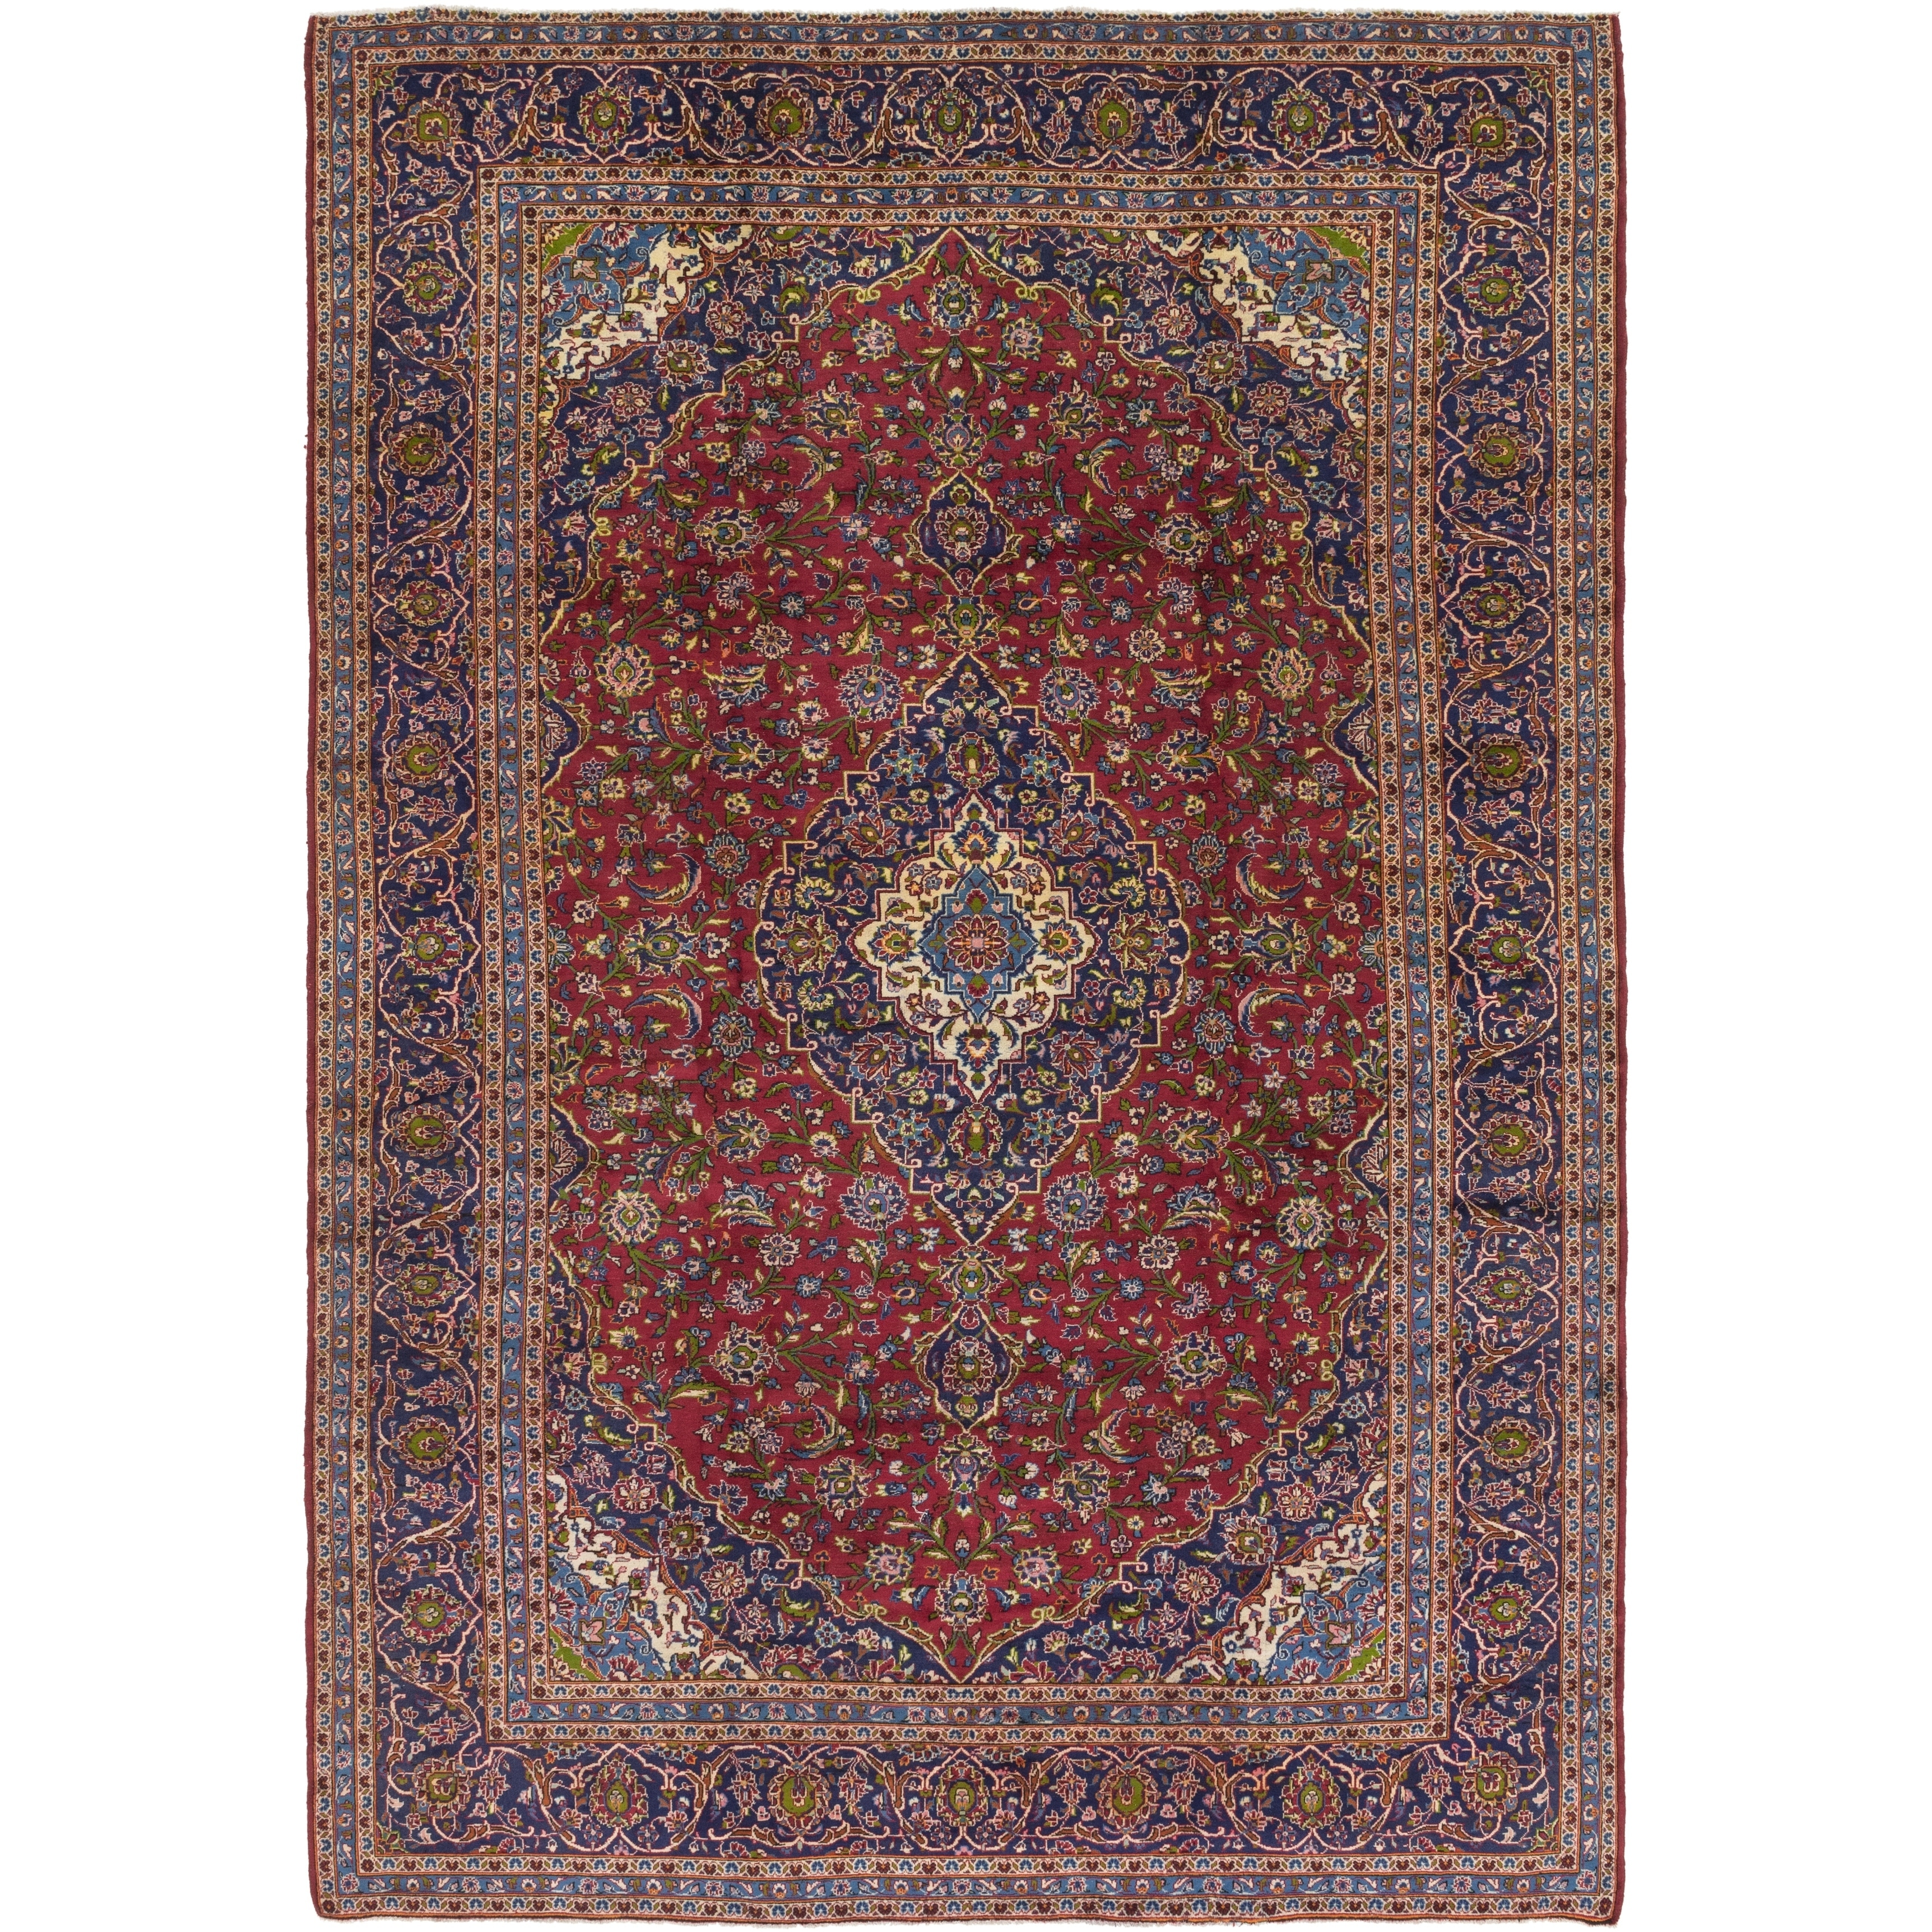 Hand Knotted Kashan Semi Antique Wool Area Rug - 9 8 x 14 4 (Red - 9 8 x 14 4)